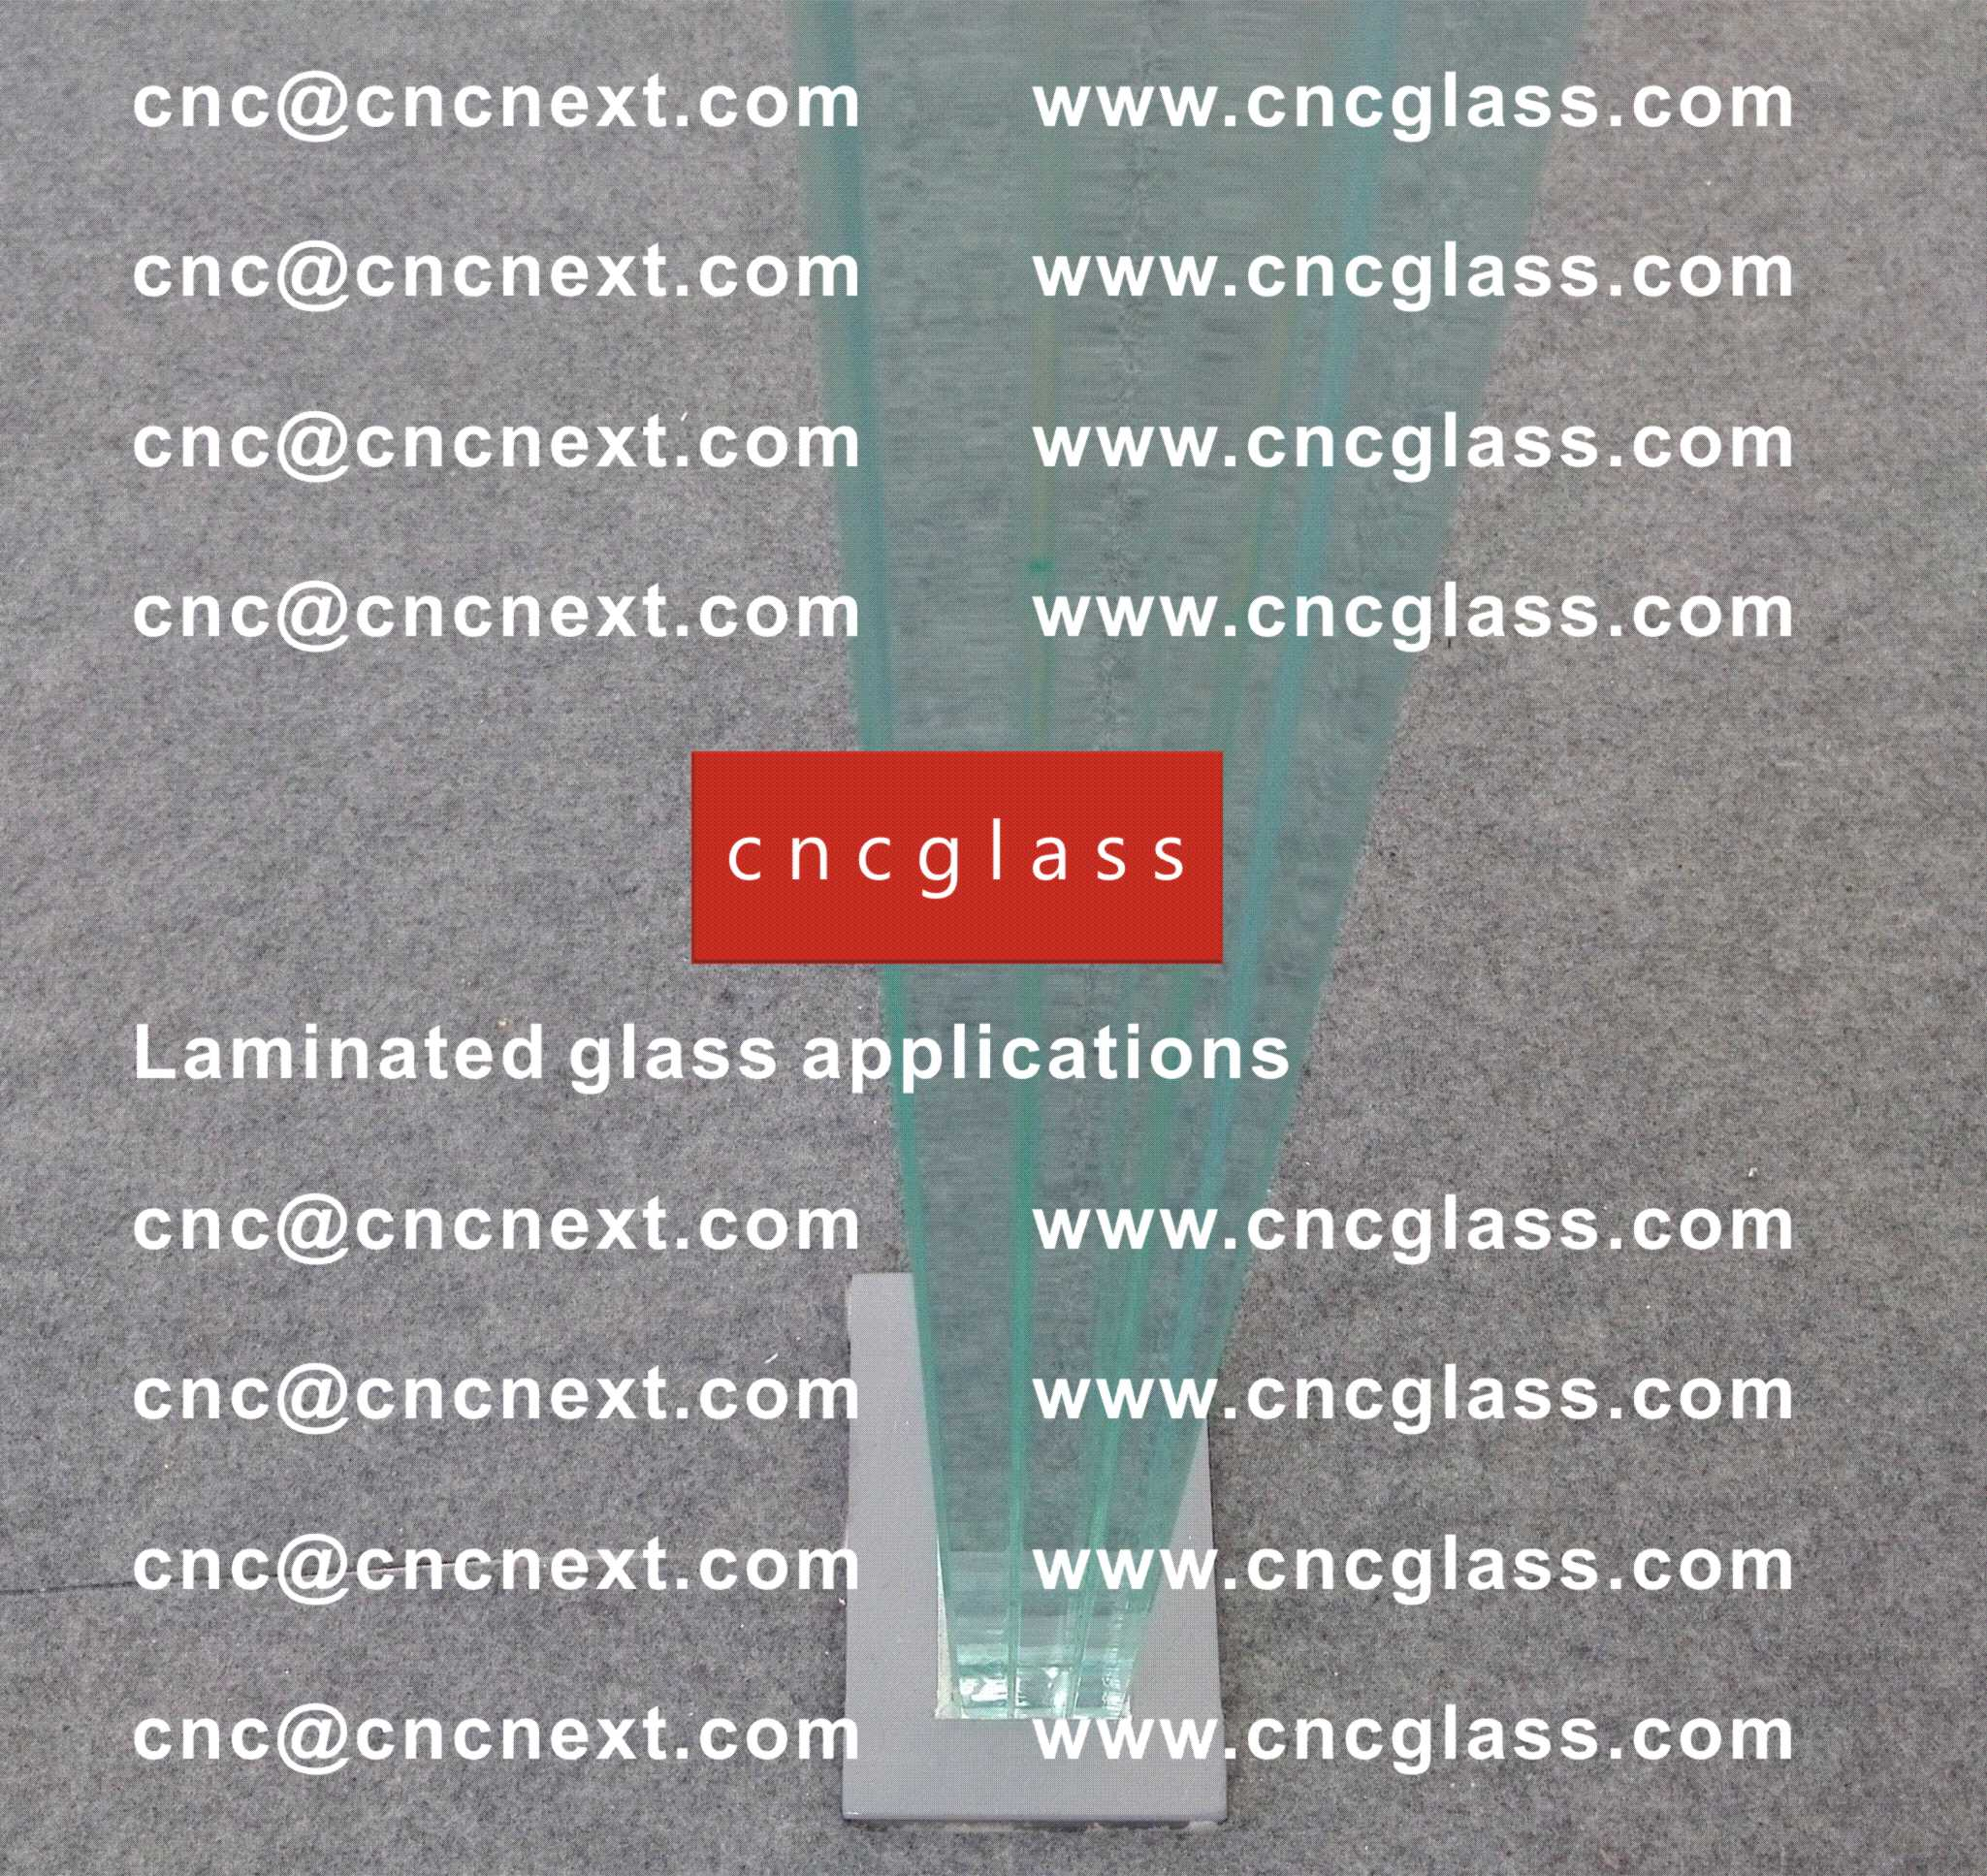 009 EVAFORCE LAMINATED GLASS